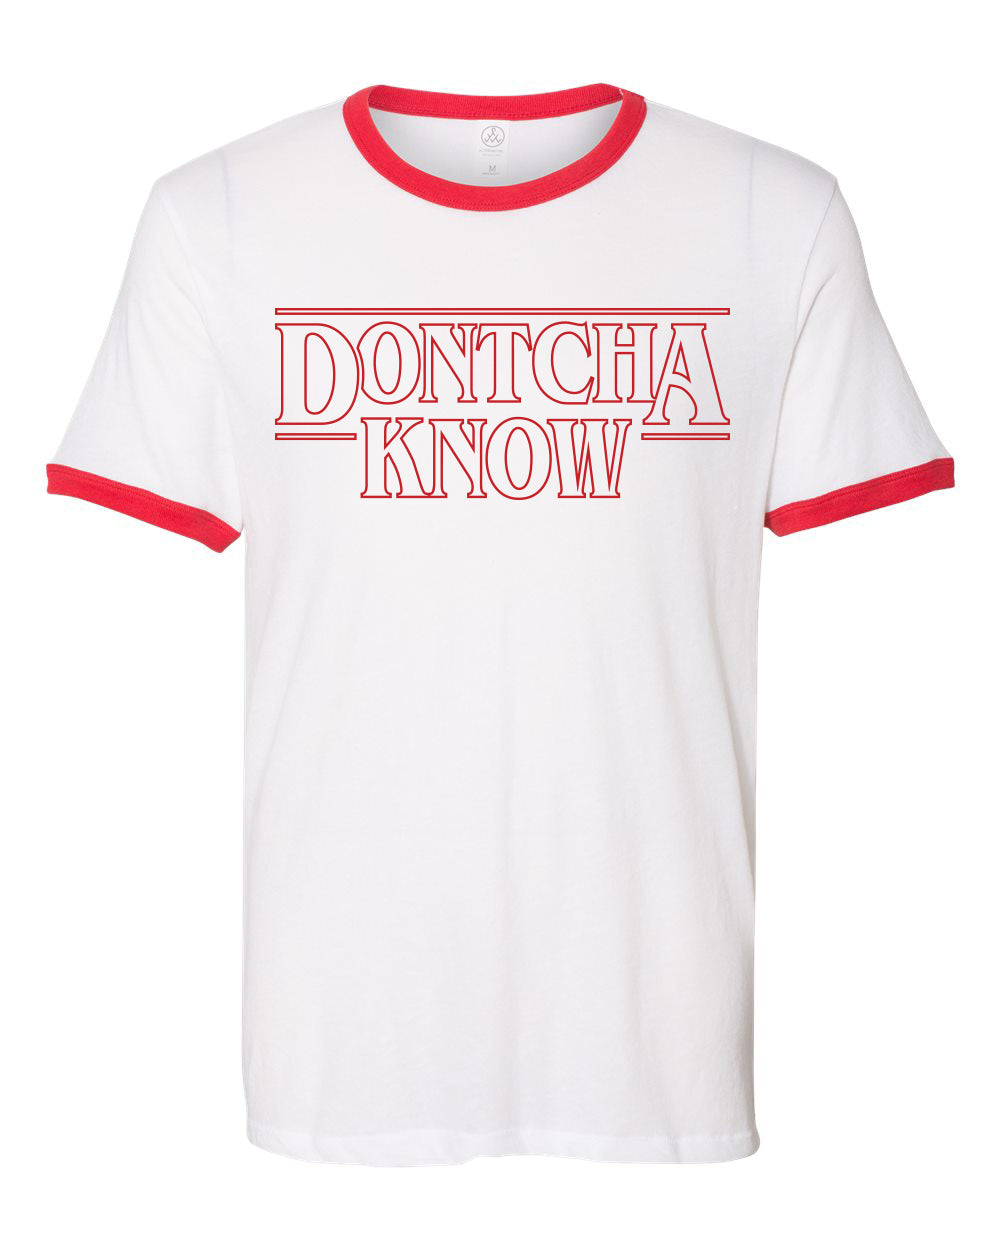 Dontcha Know Vintage Ringer Tee - White/Red - Front